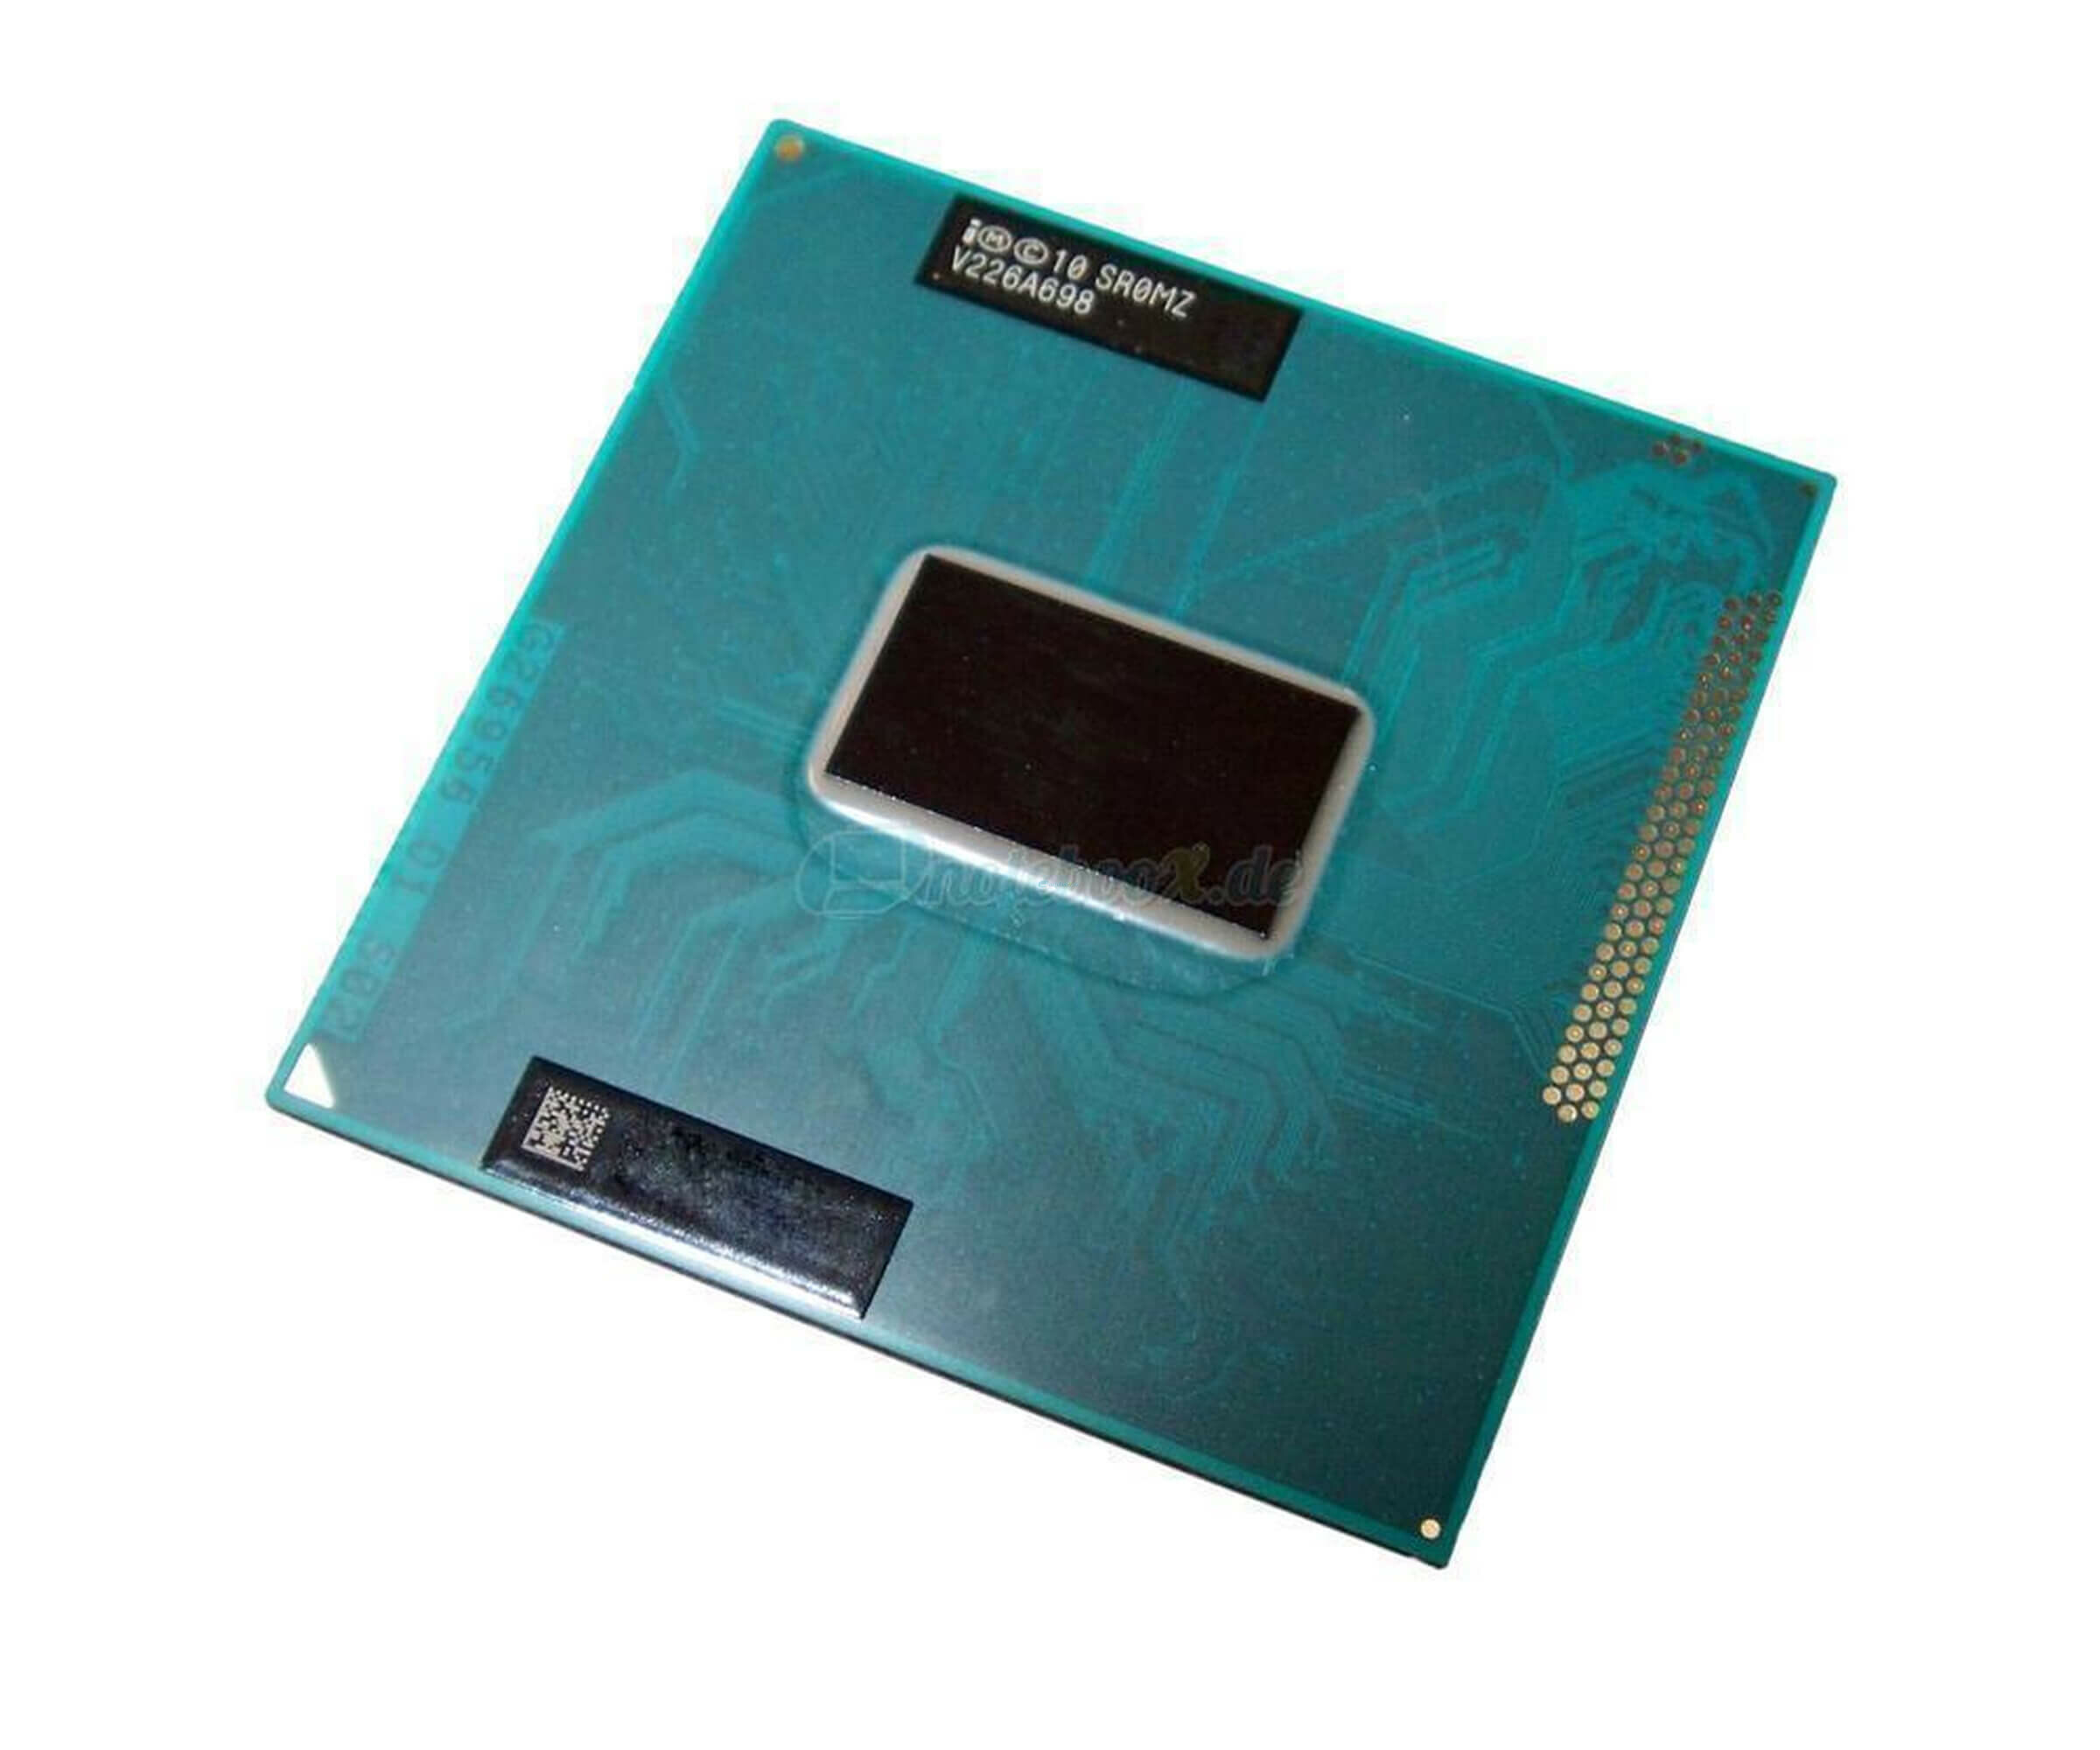 Intel Core i3-2330M / 2.20 GHz Prozessor - PPGA988 - 3 MB Cache - 2-Core